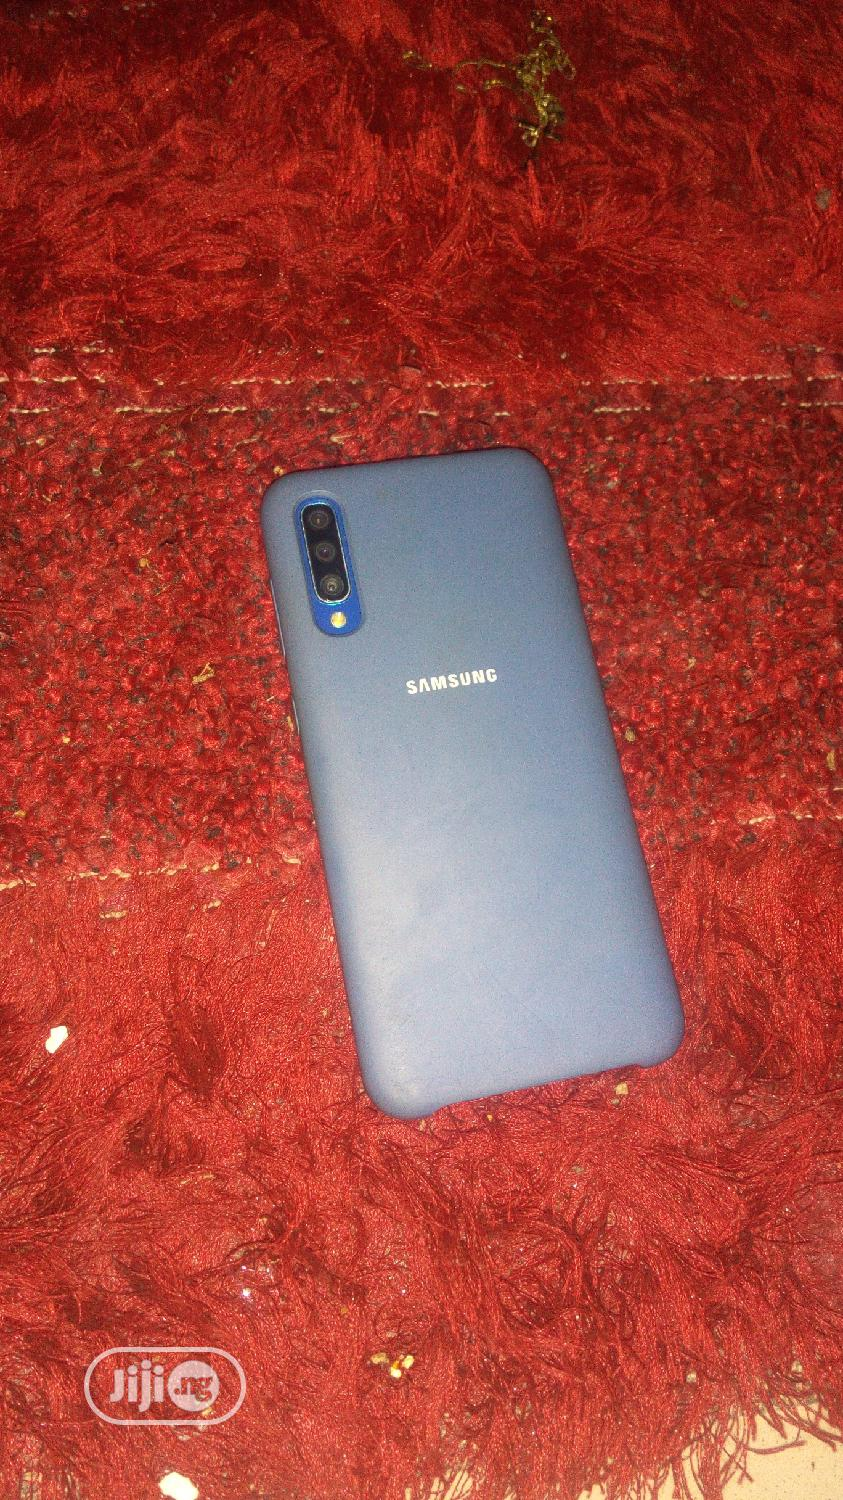 Samsung Galaxy A50 128 GB Blue | Mobile Phones for sale in Ibeju, Lagos State, Nigeria